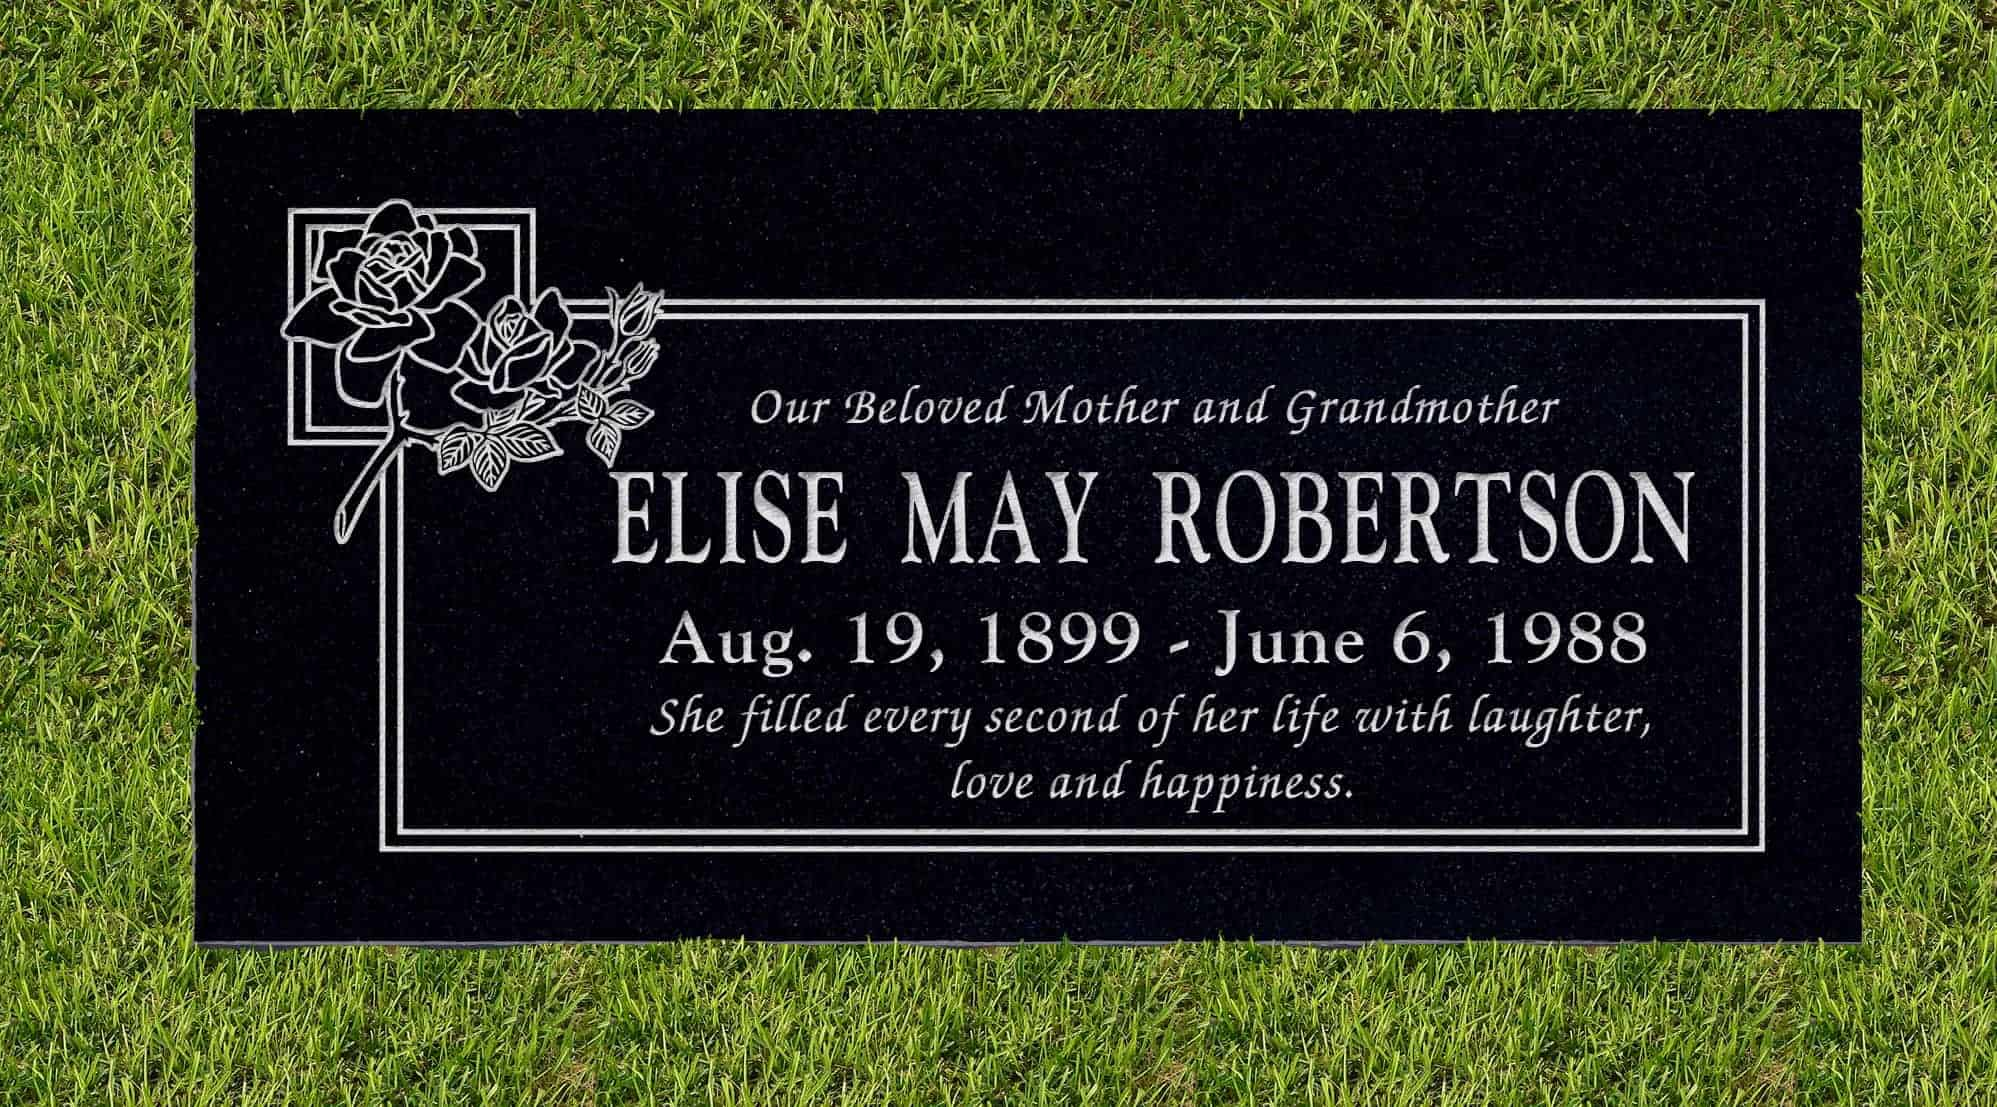 24inch_x_12inch_x_3inch_Flat_Granite_Headstone_in_Imperial_Black_with_design_B-11_installed_in_ground